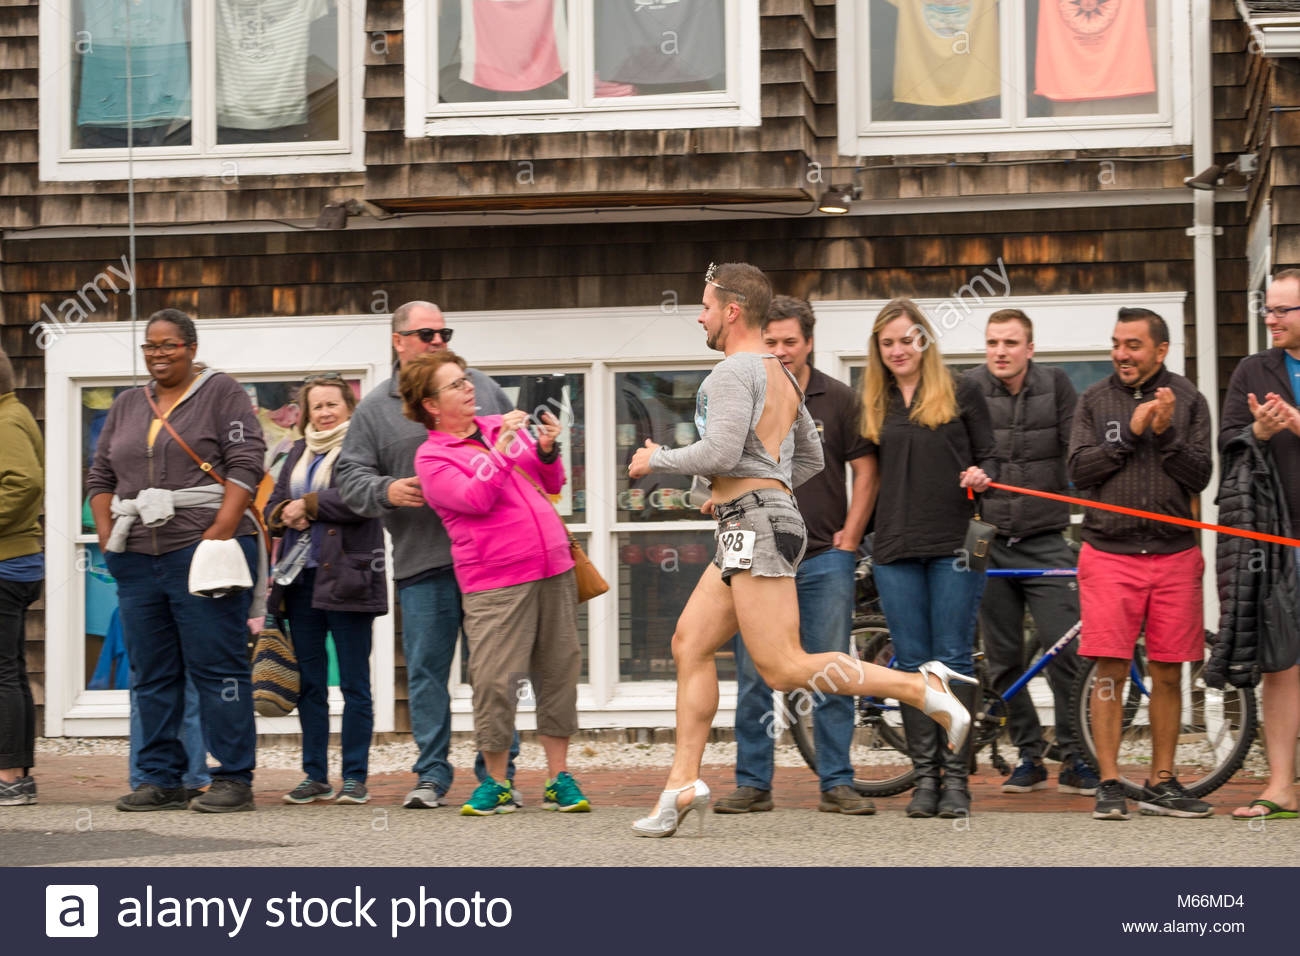 Man running in high heels during the OgunquitFest High Heel Dash, Perkins Cove, Ogunquit, York County, Maine, USA - Stock Image